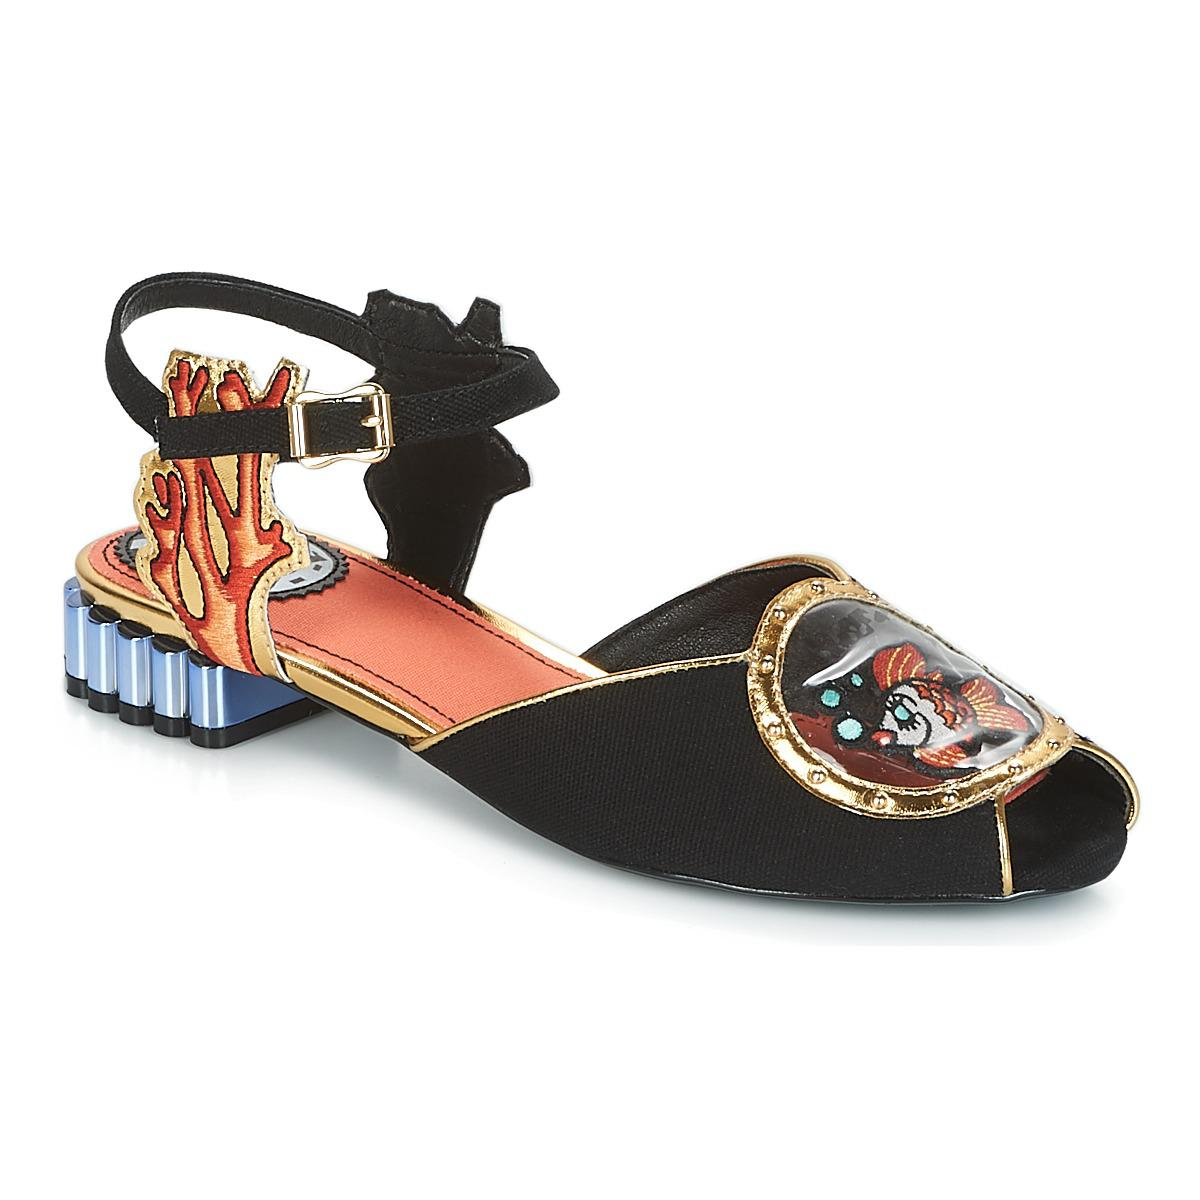 44a6156c862 Miss L Fire Ariel Women s Sandals In Black in Black - Lyst